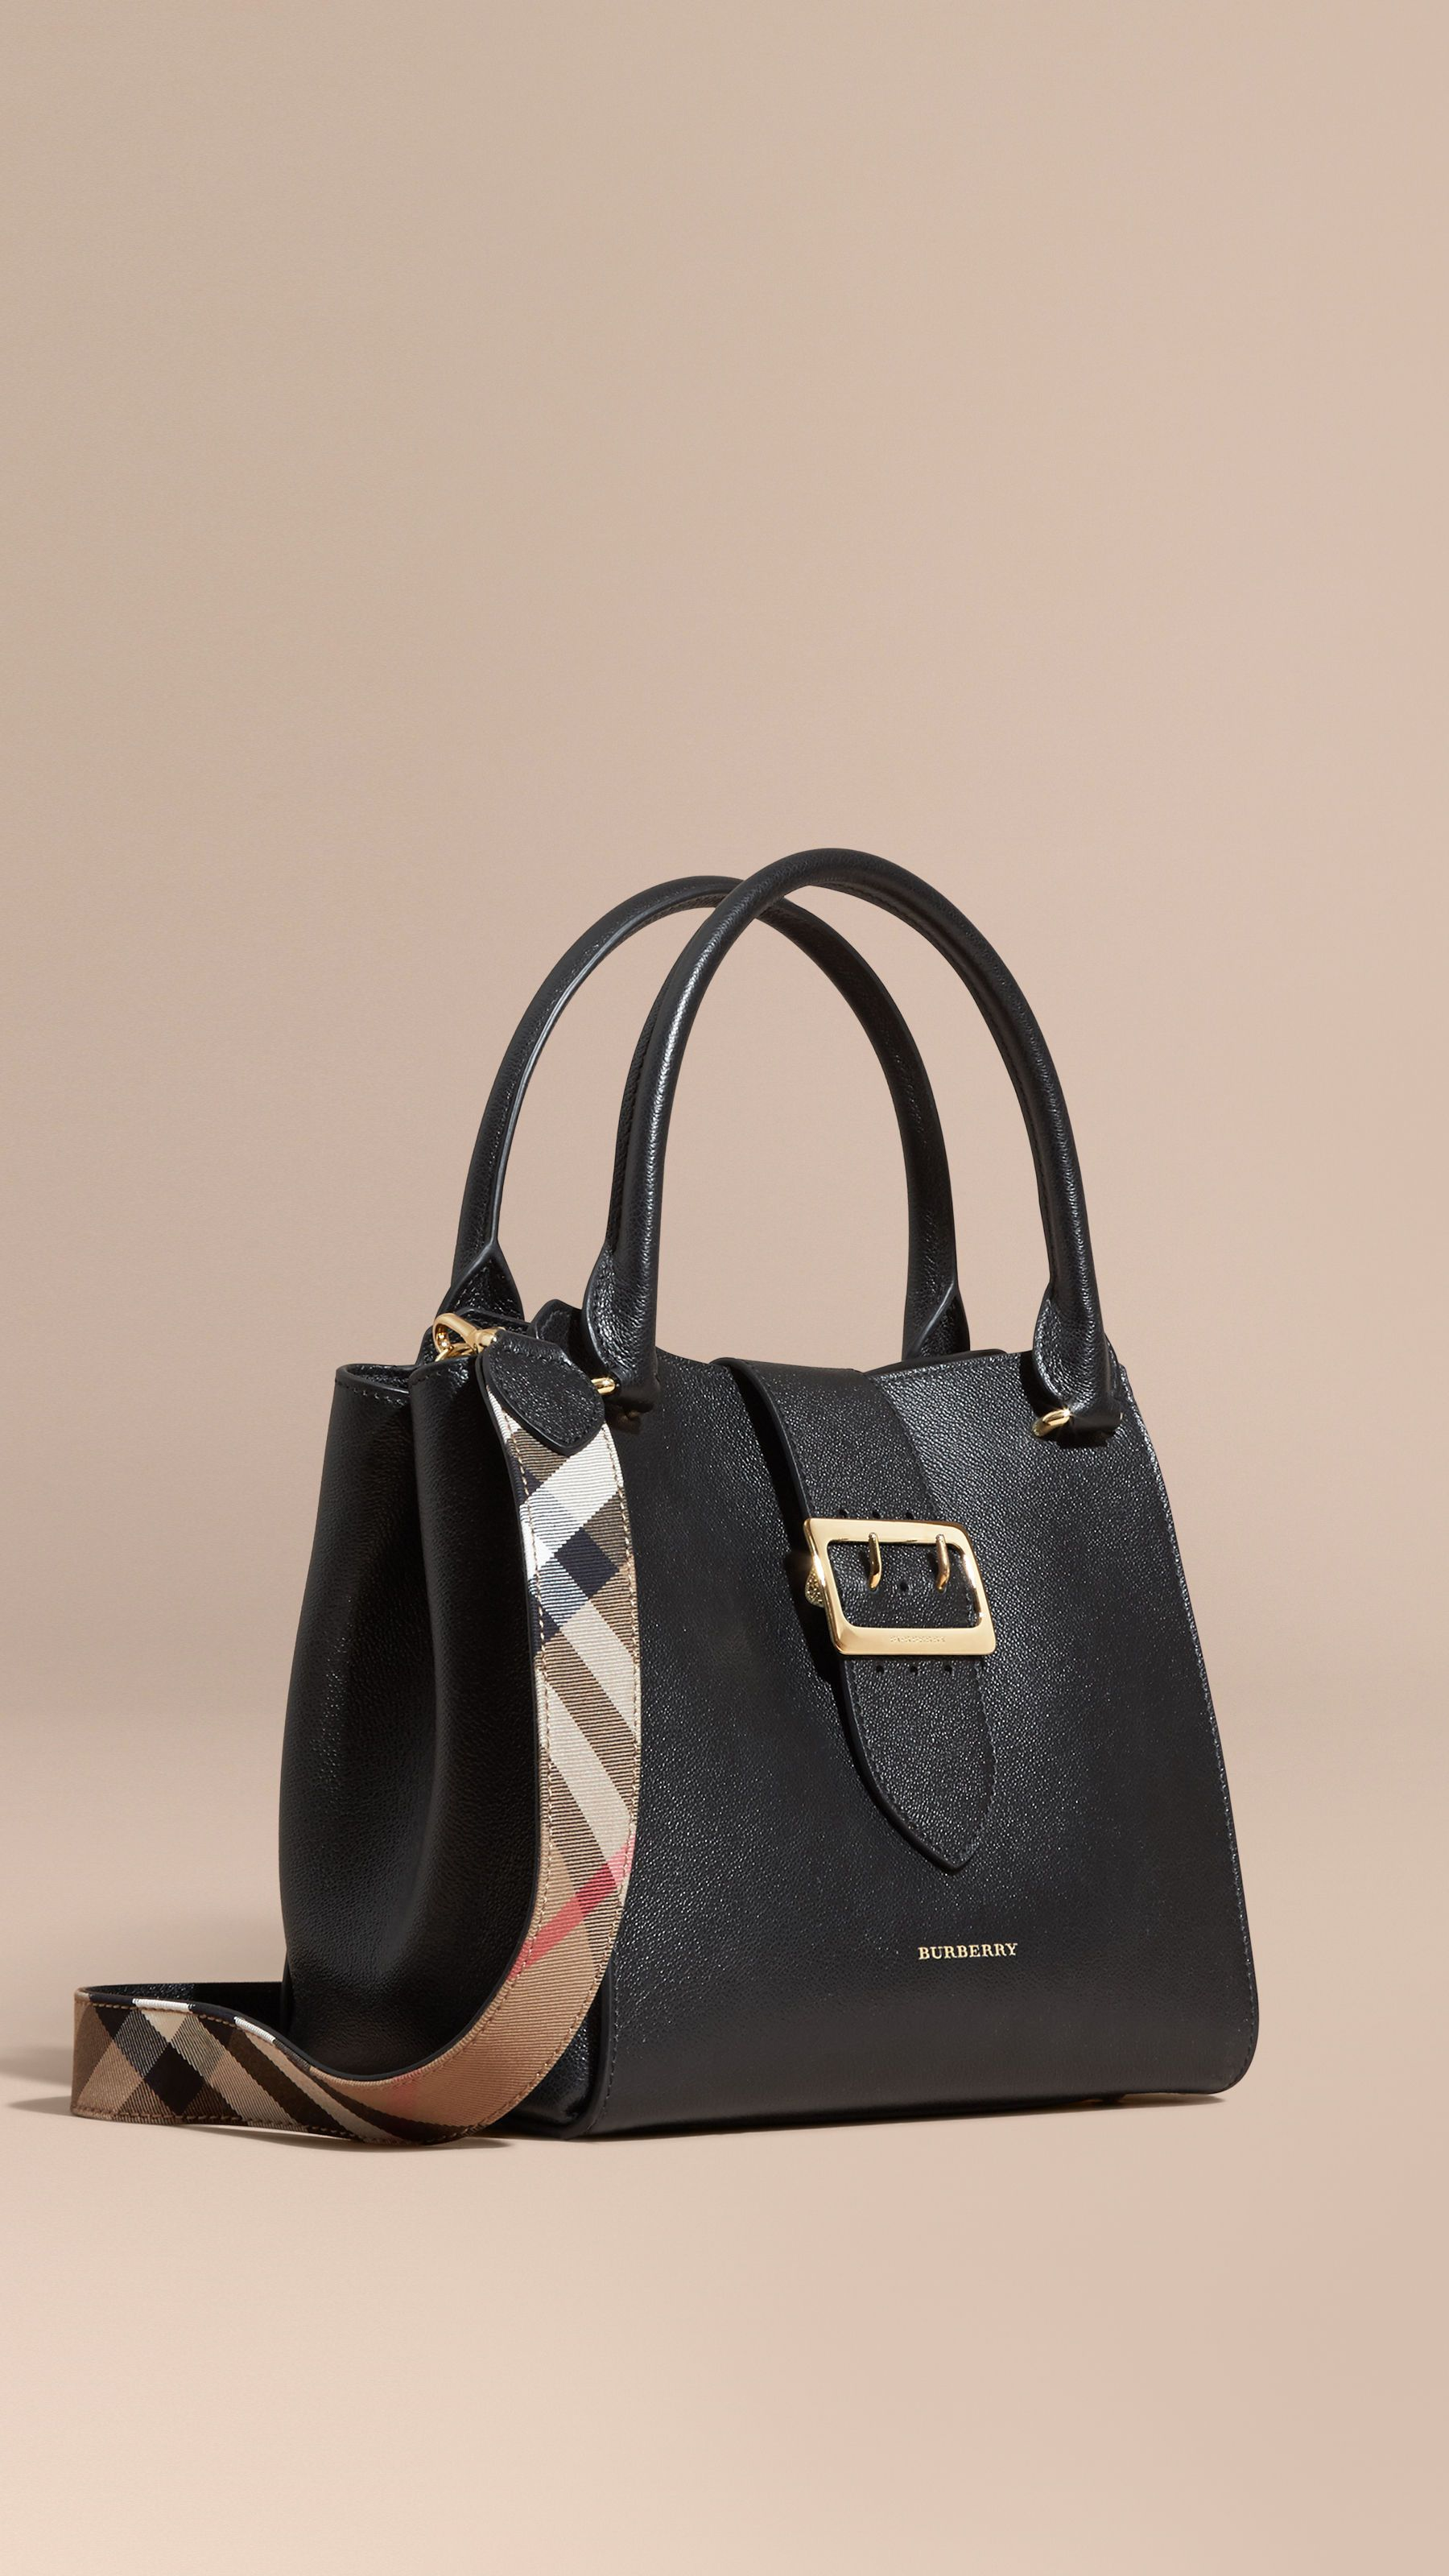 5188ae4b0905 The Medium Buckle Tote in Grainy Leather Black